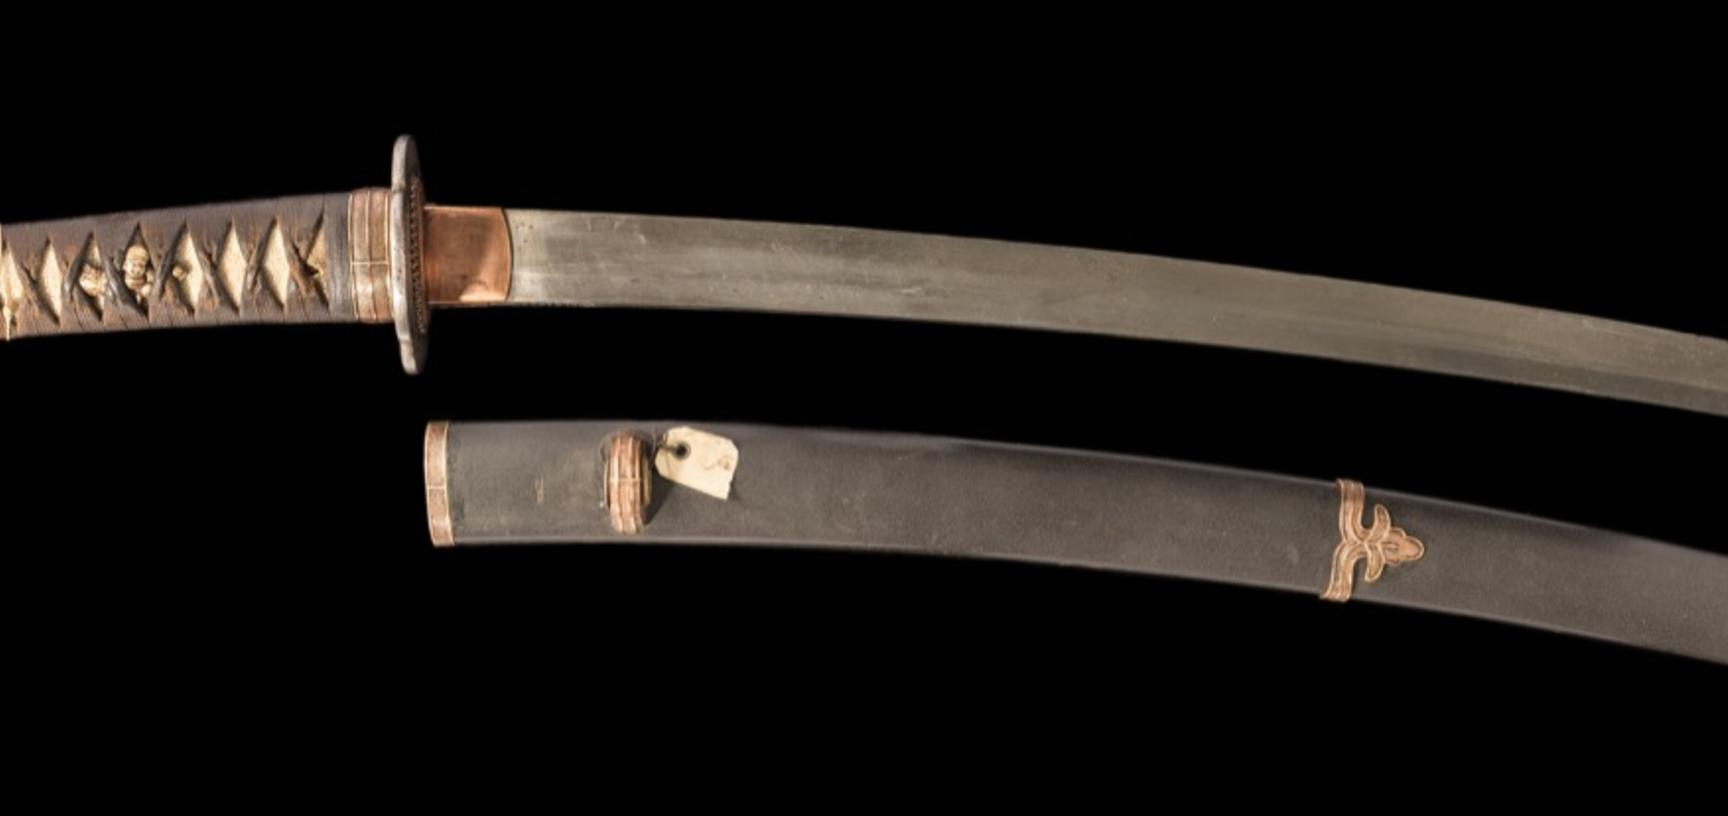 Wakizashi, or Japanese short sword, typically carried by samurai as one of a pair of blades (daishō). This sword was part of Lieutenant-General Pitt Rivers' founding collection, originally displayed in Bethnal Green Museum and transferred from South Kensi